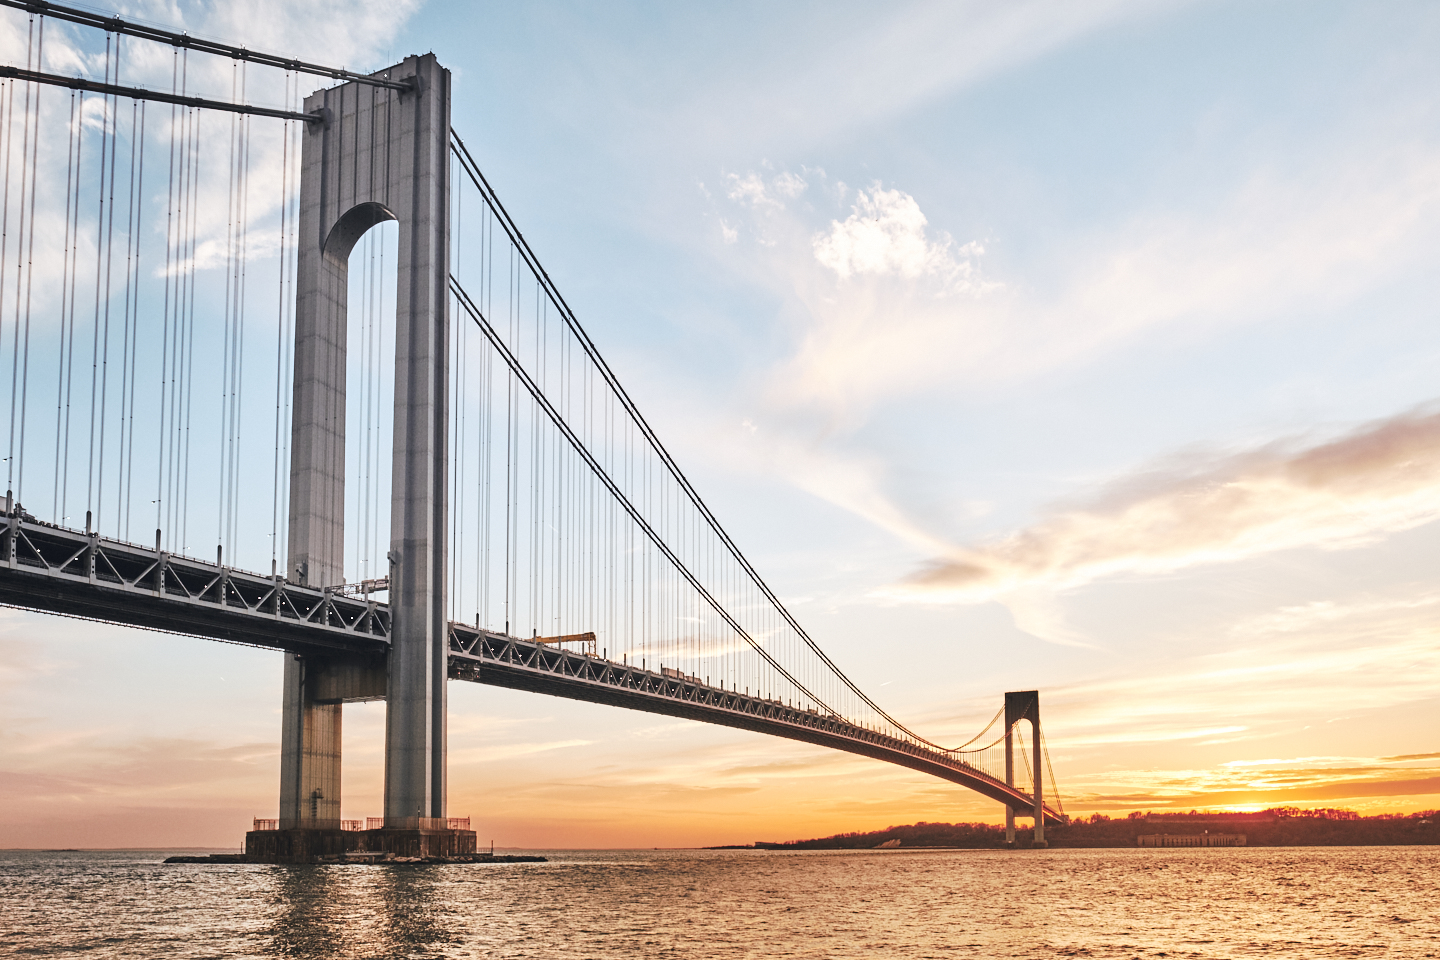 new-york-verrazano-bridge-travel-photographer-marcus-lewis